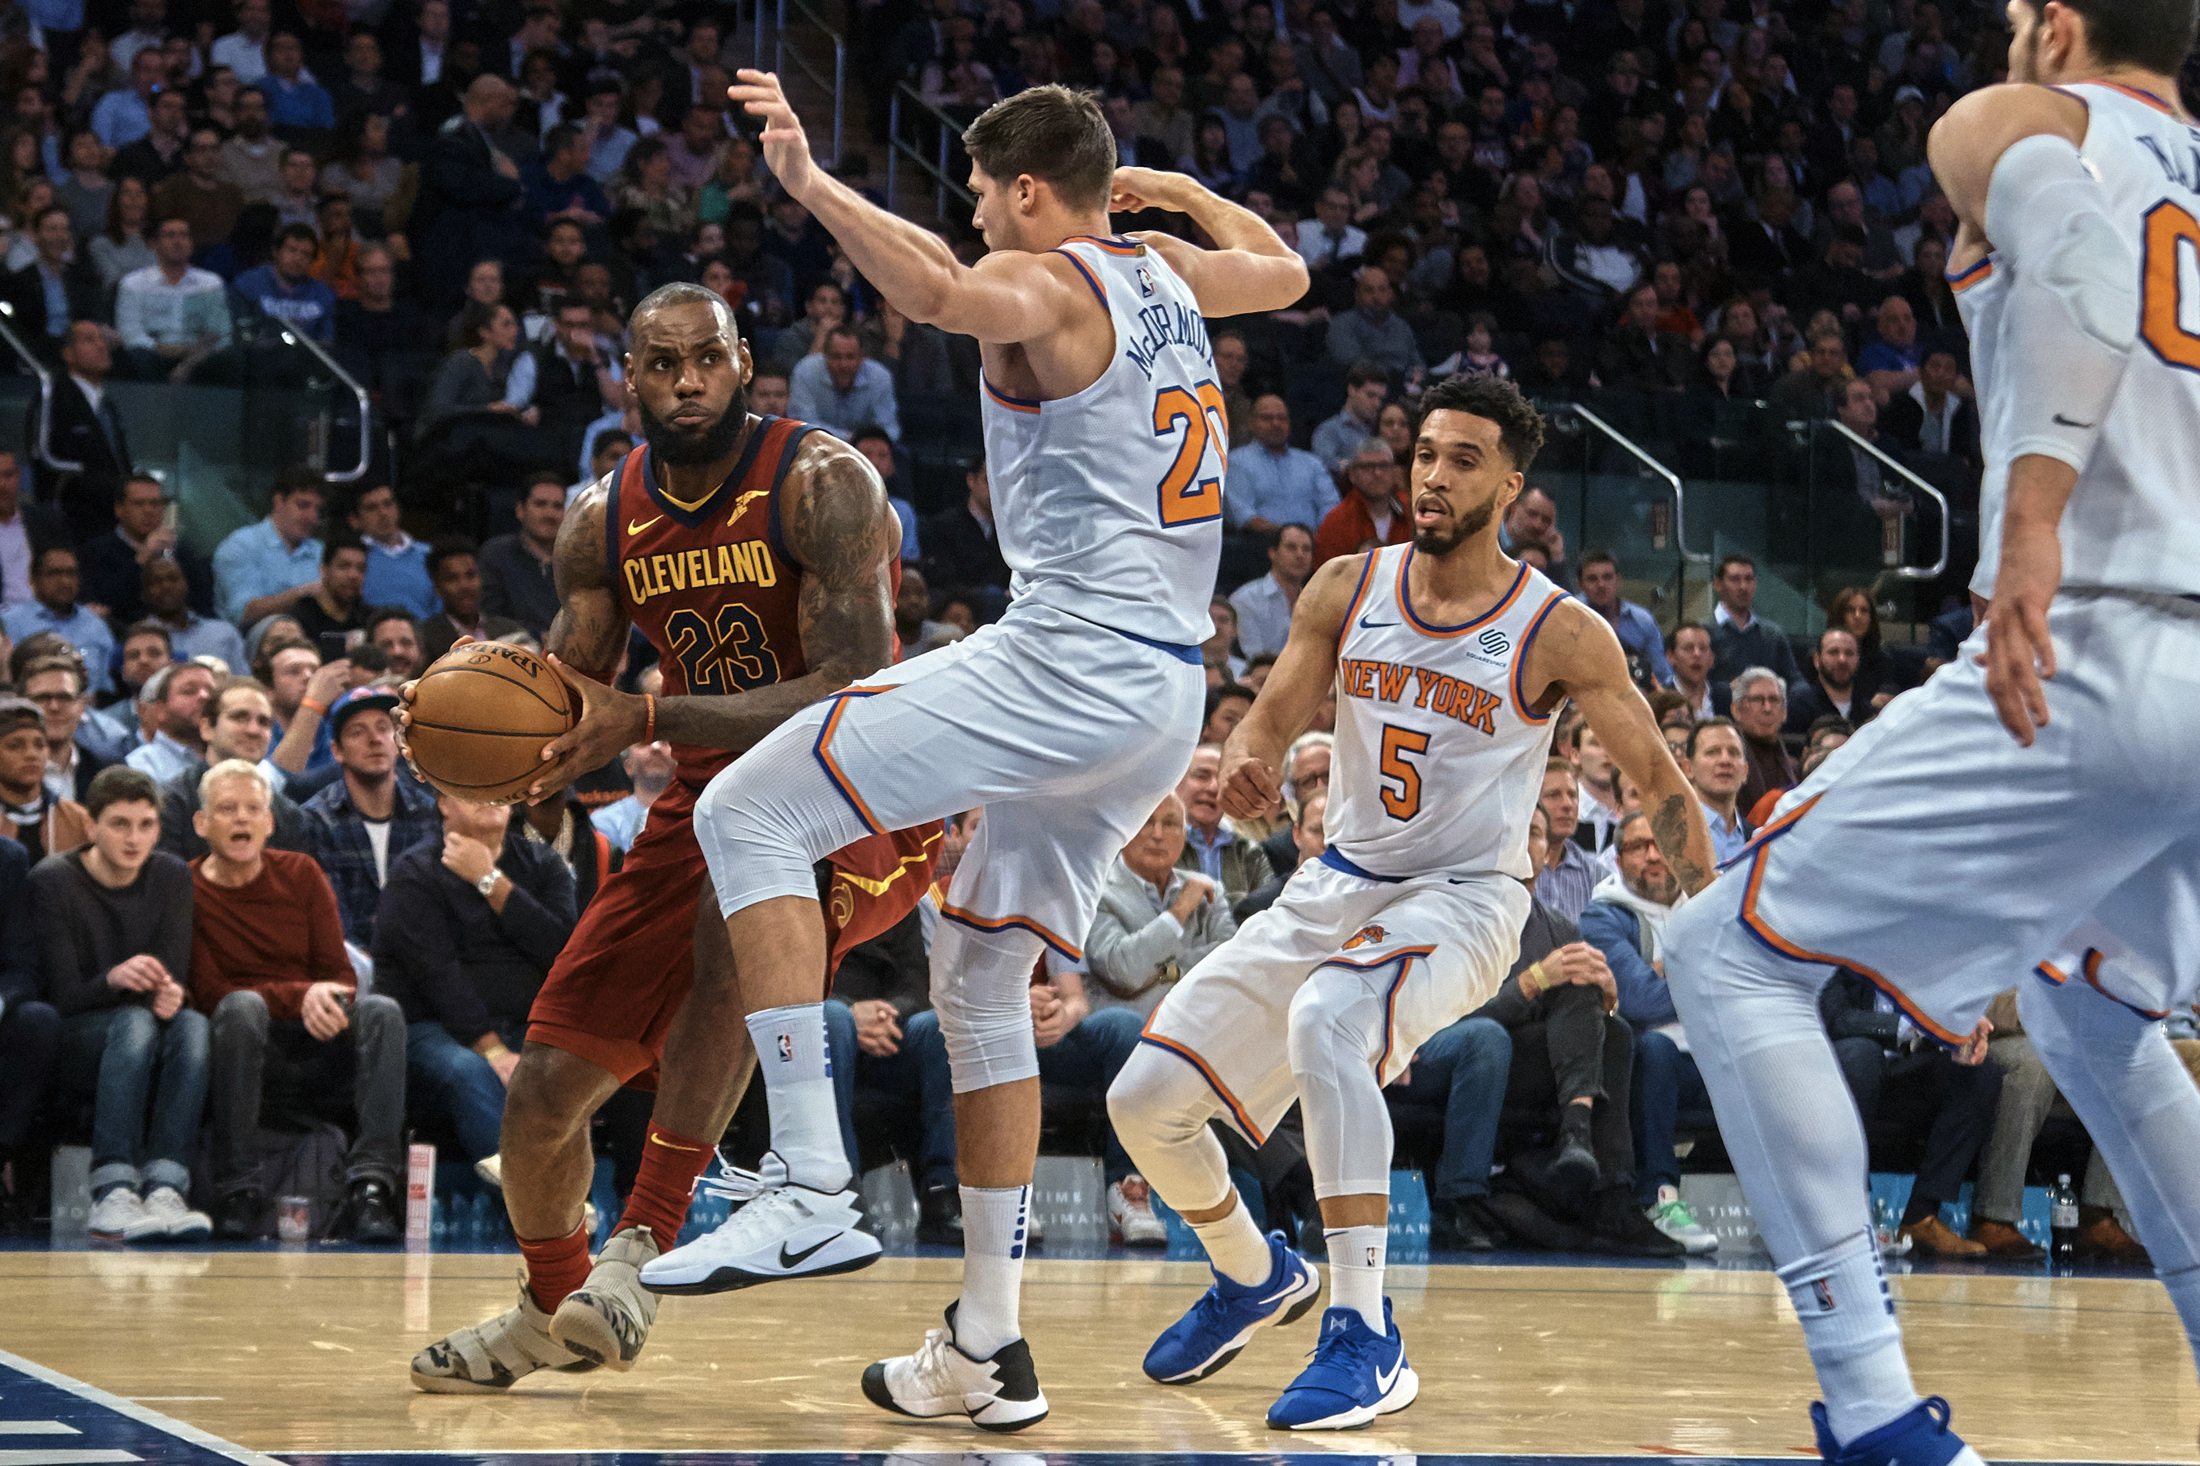 9465c628243d Cleveland Cavaliers' LeBron James, left, dribbles between New York Knicks  players during the